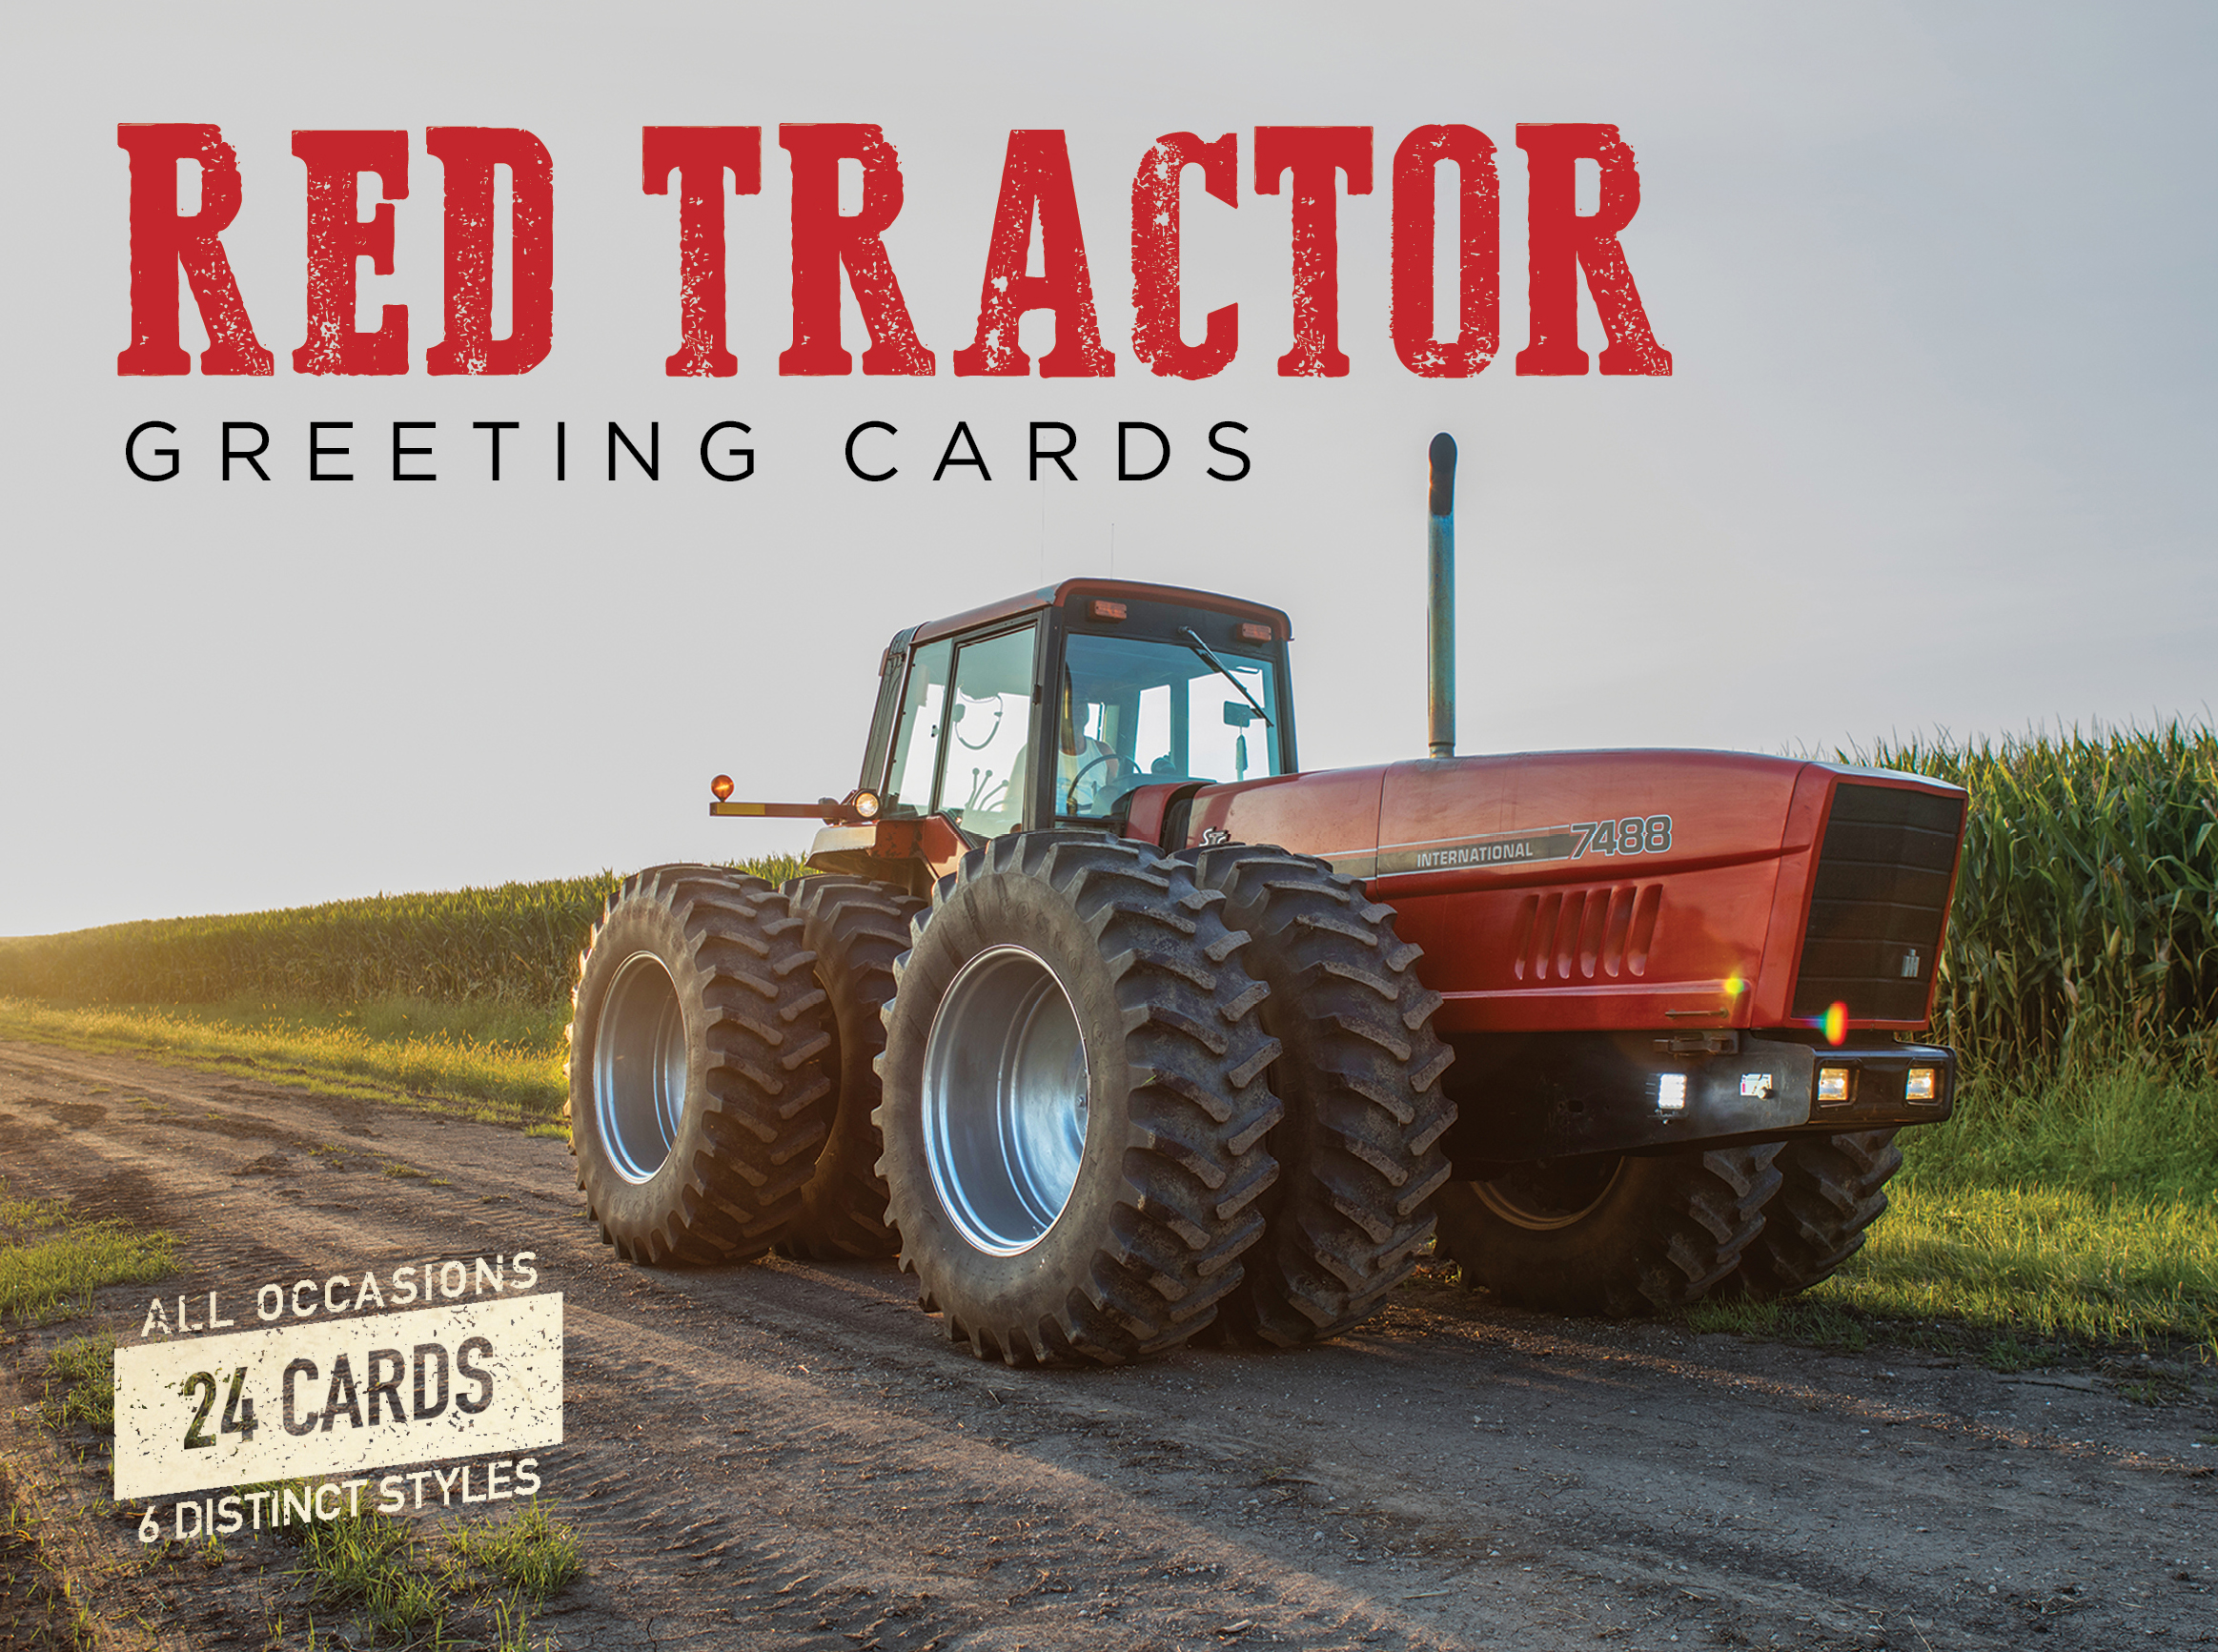 Red Tractor Greeting Cards Octane Press